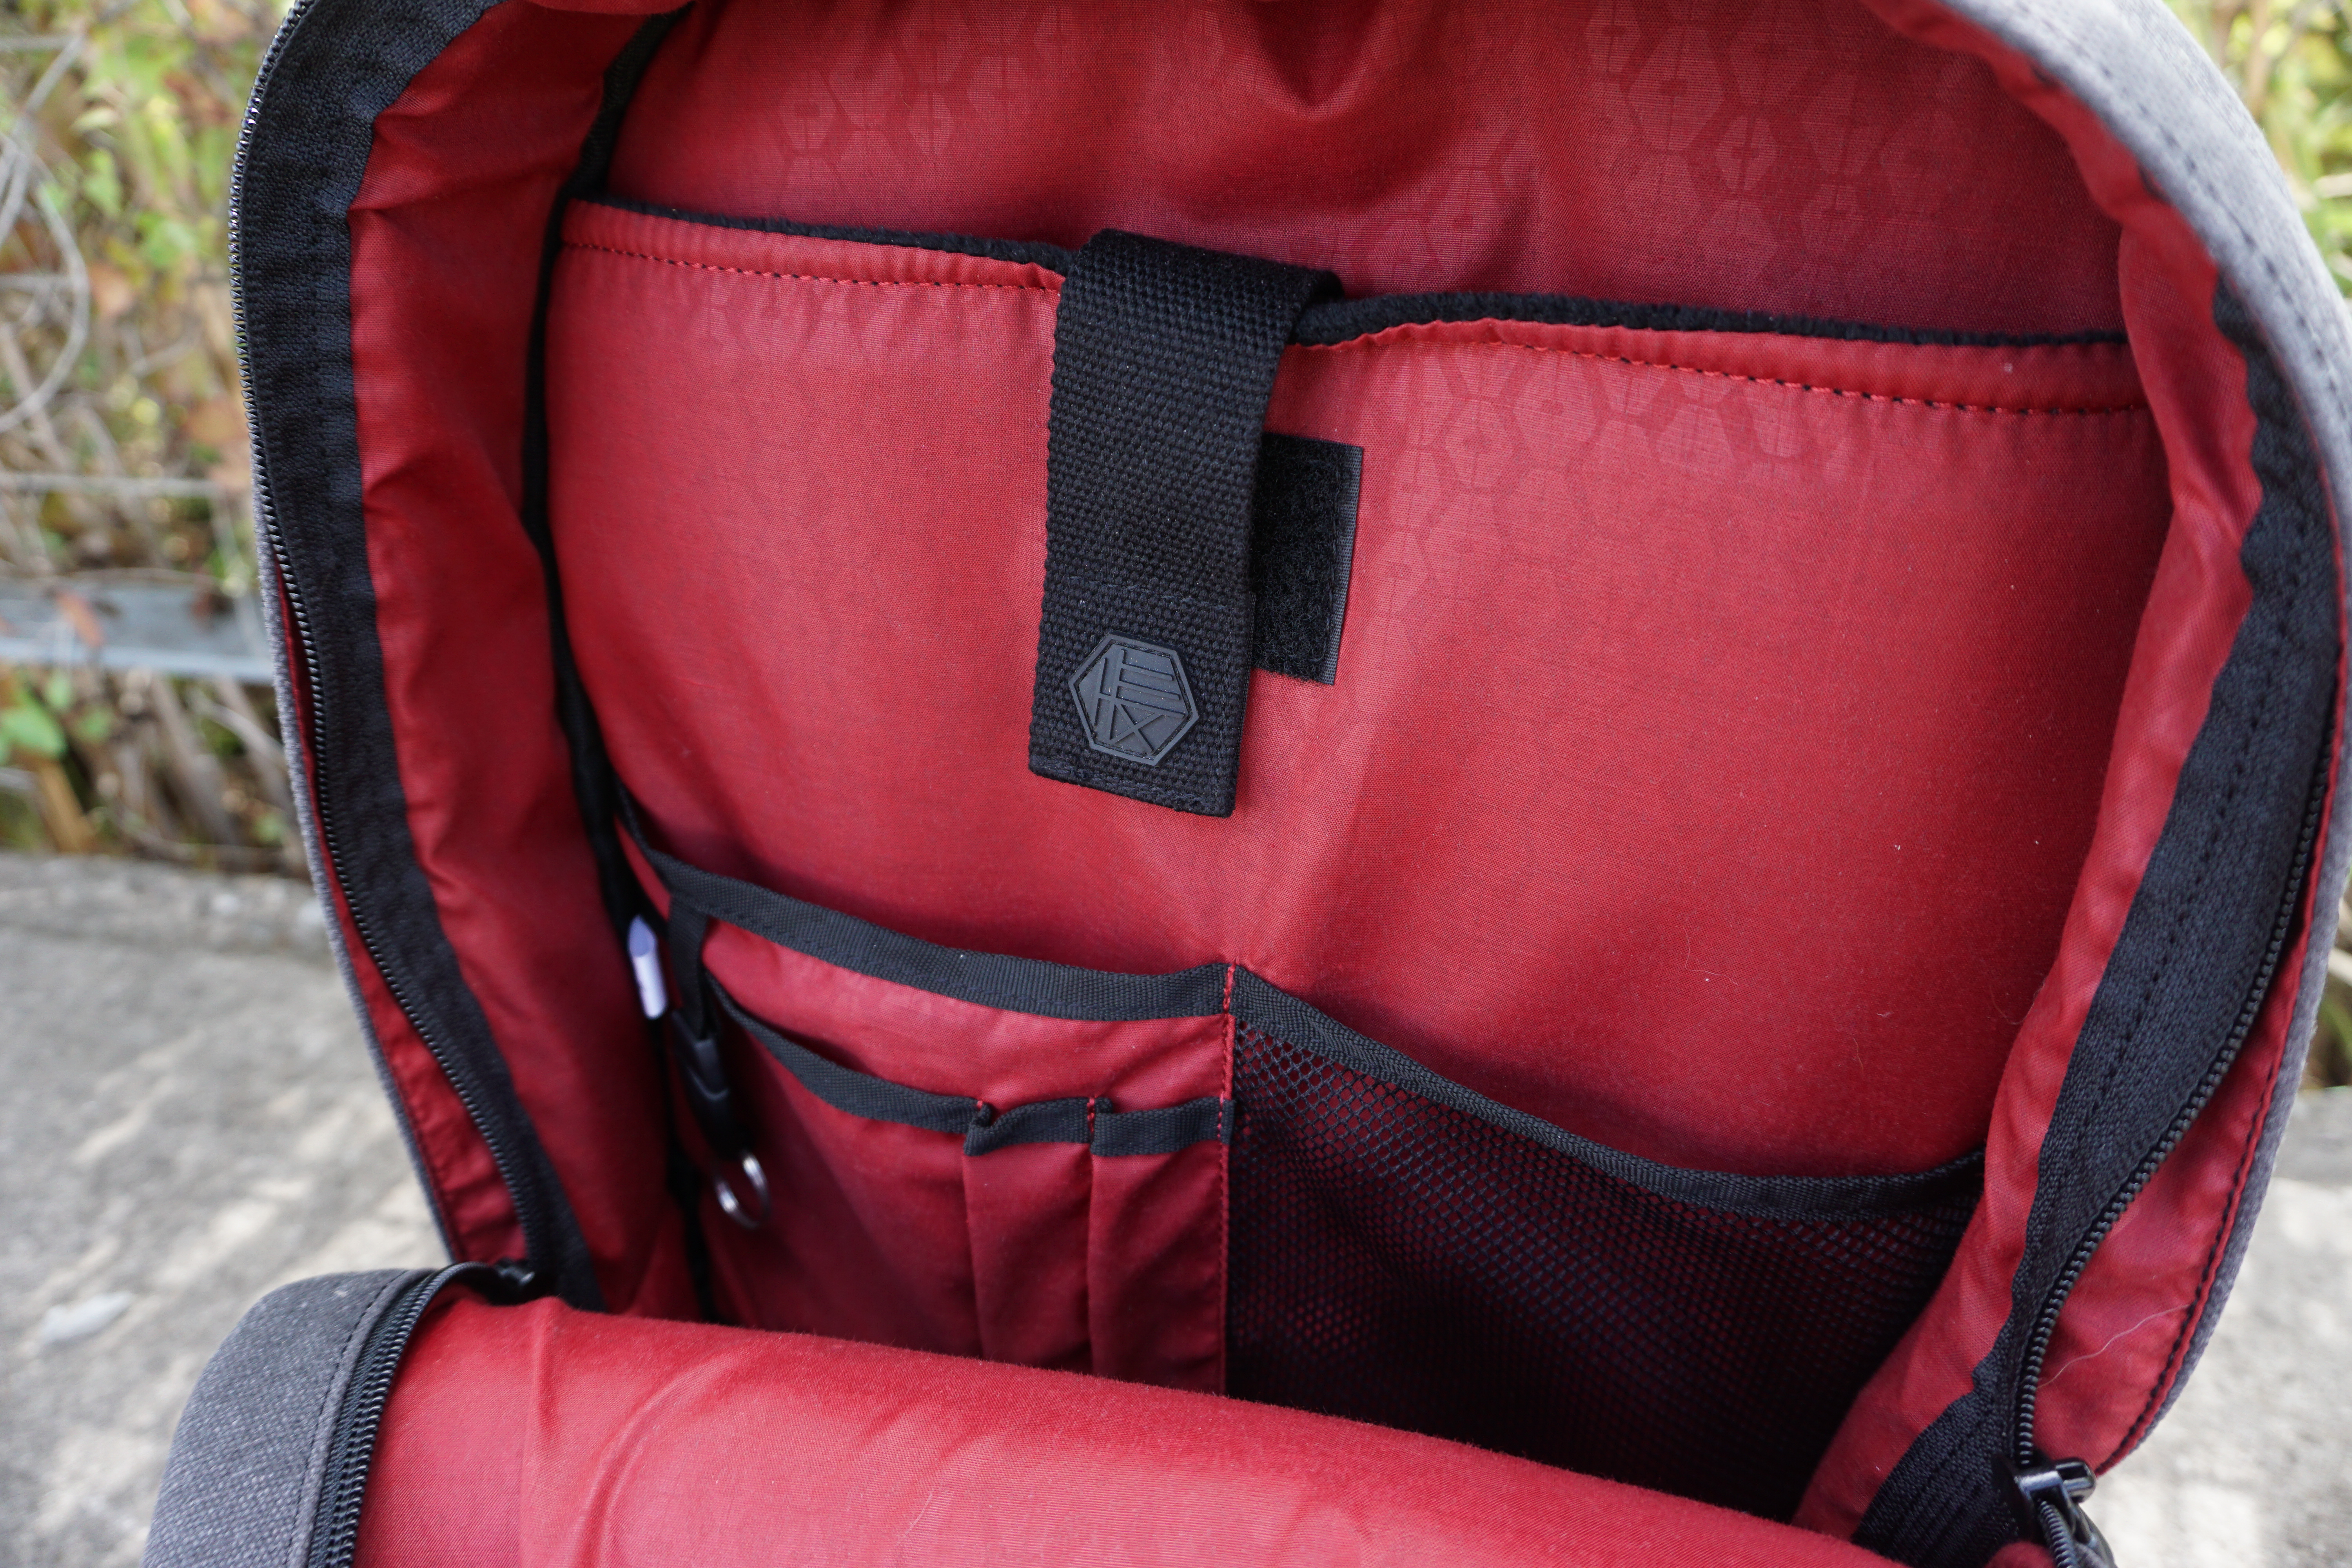 Hex Brand Supply Signal backpack review interior organisation laptop compartment red lining mesh pocket